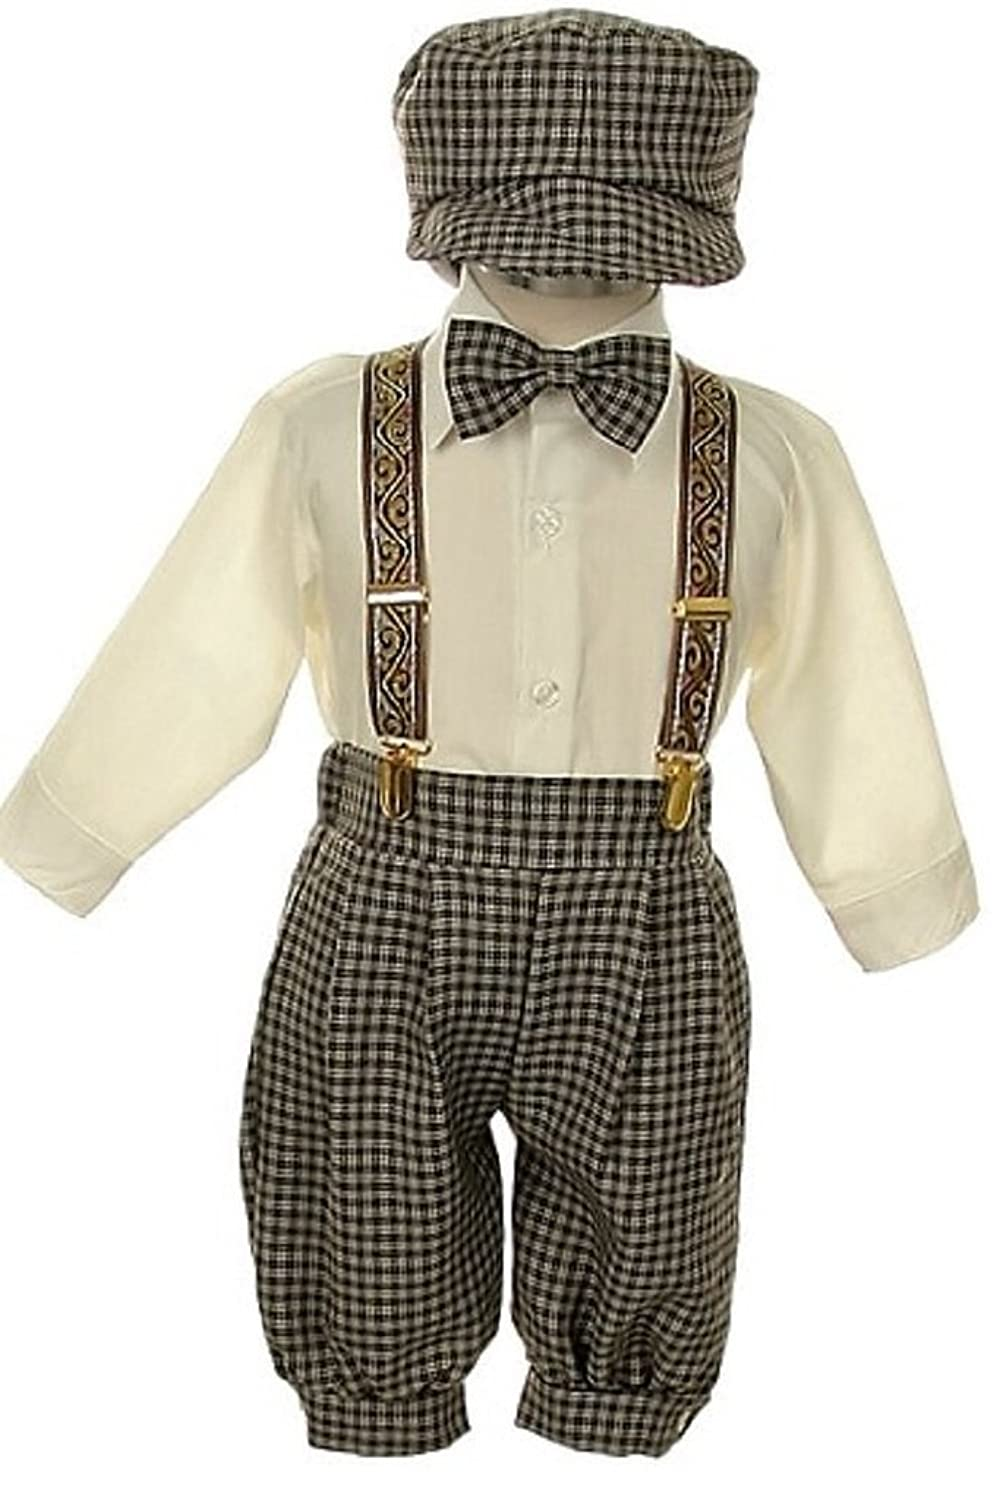 Steampunk Kids Costumes | Girl, Boy, Baby, Toddler iGirlDress Vintage Dress Suit-Tuxedo Knickers Outfit Set Baby Boys & Toddler $35.00 AT vintagedancer.com